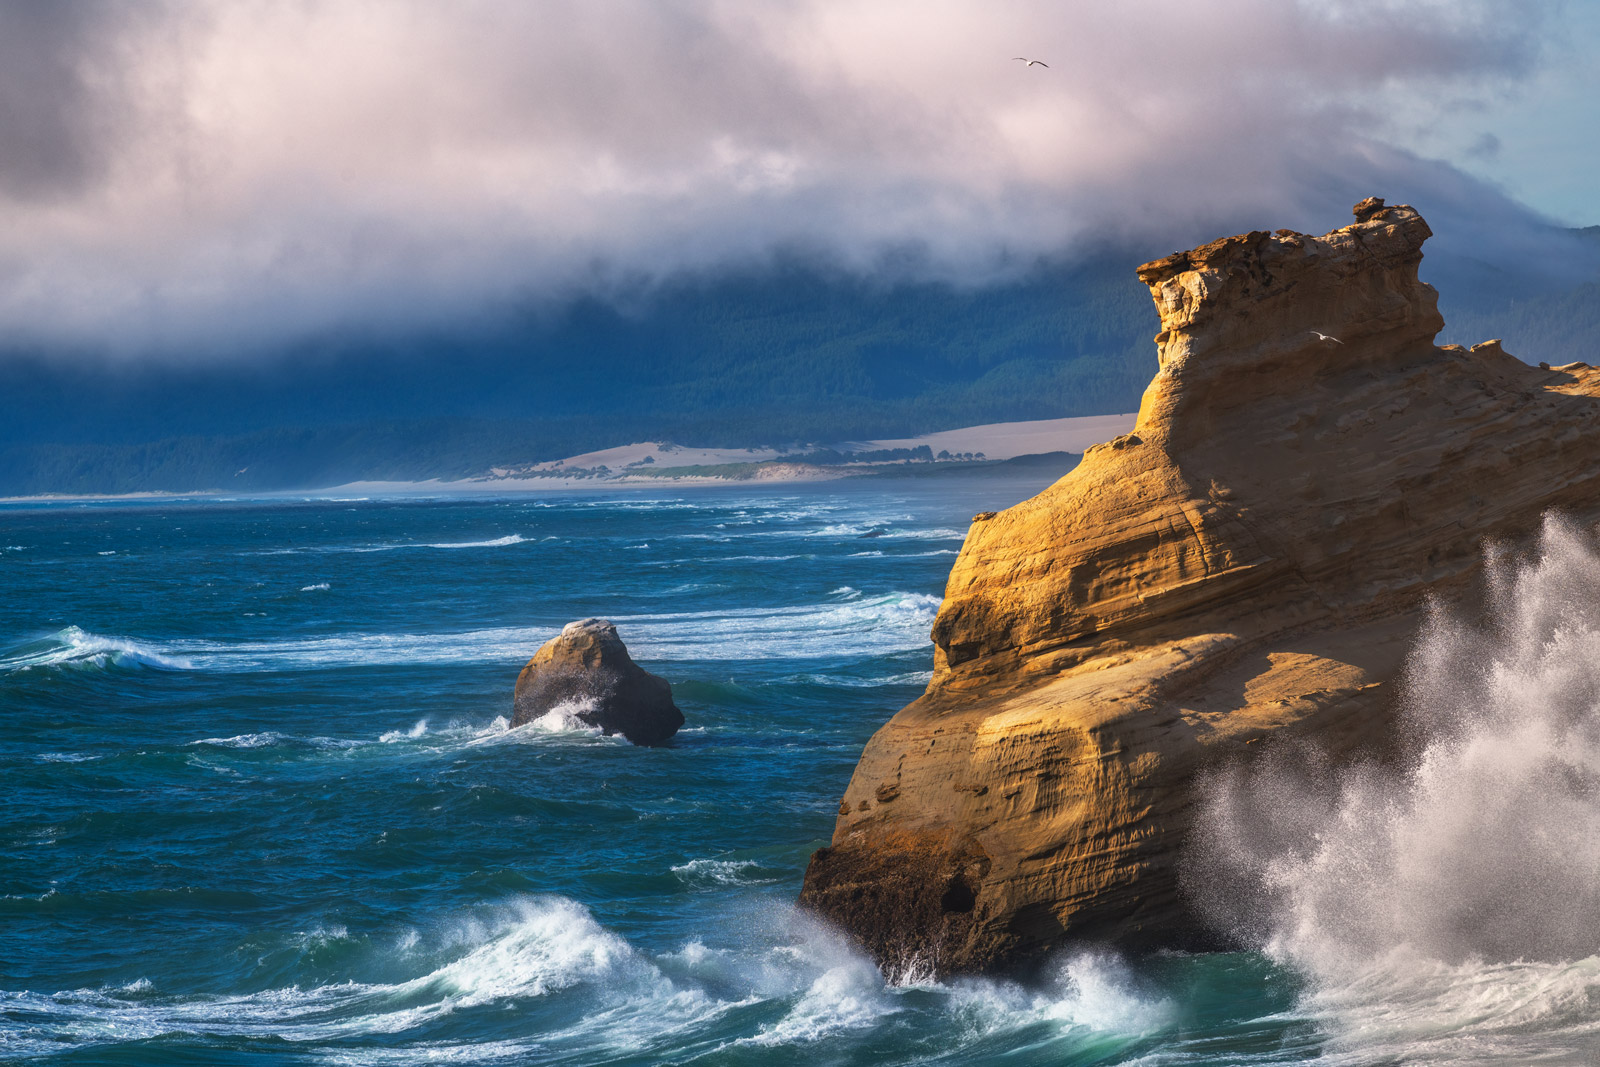 Oregon, Cape, Kiwanda, Storm, Wave, photo